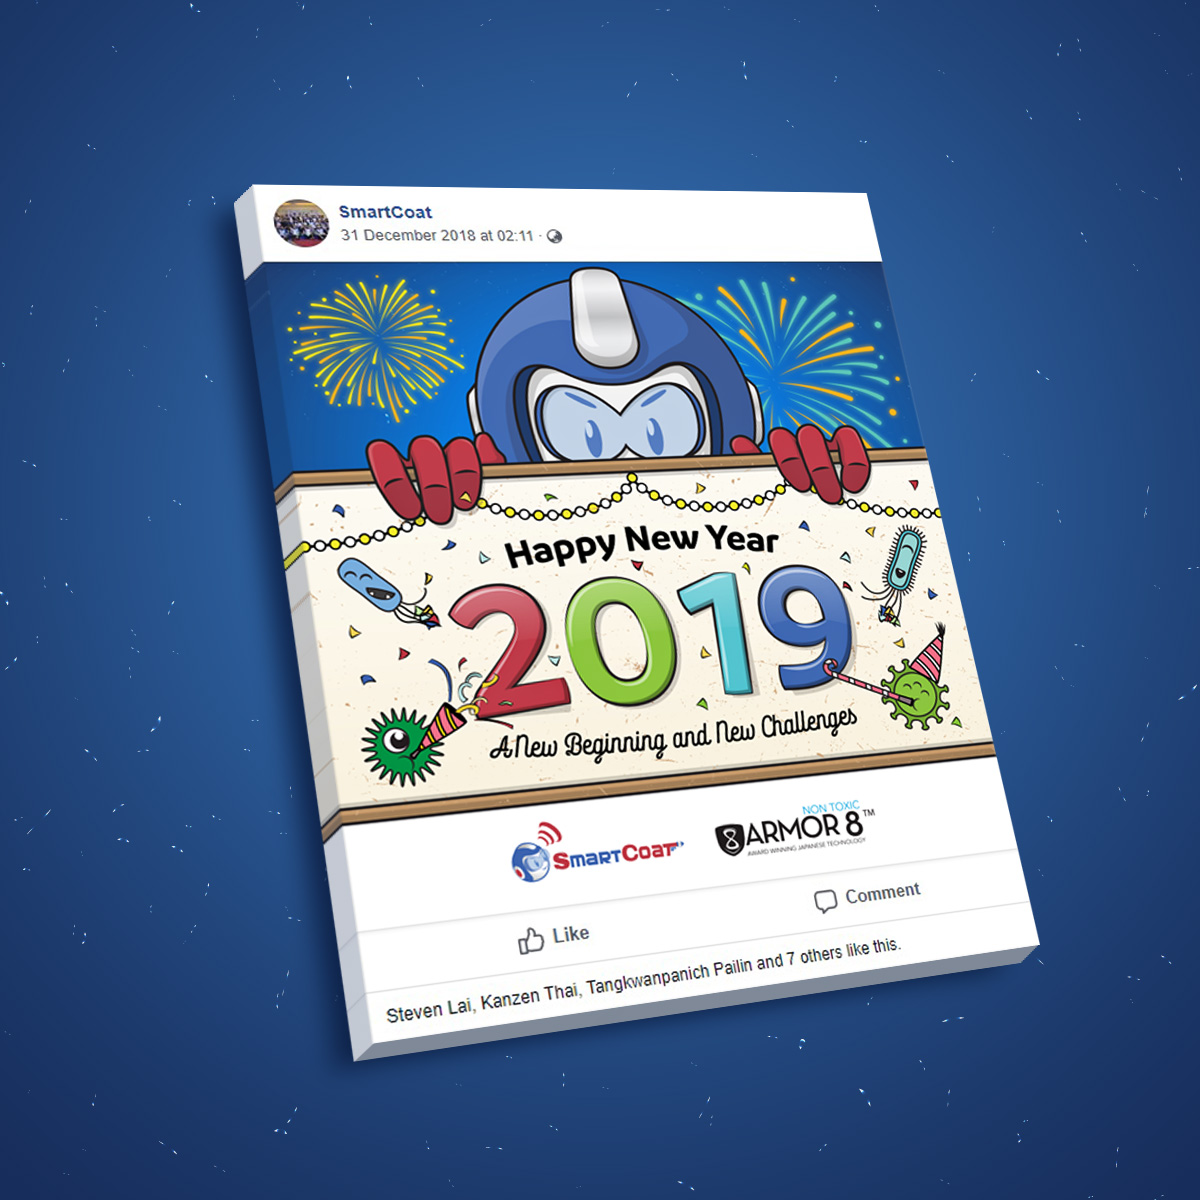 SmartCoat and Armor8 Happy New Year 2019 Facebook Post Design 03